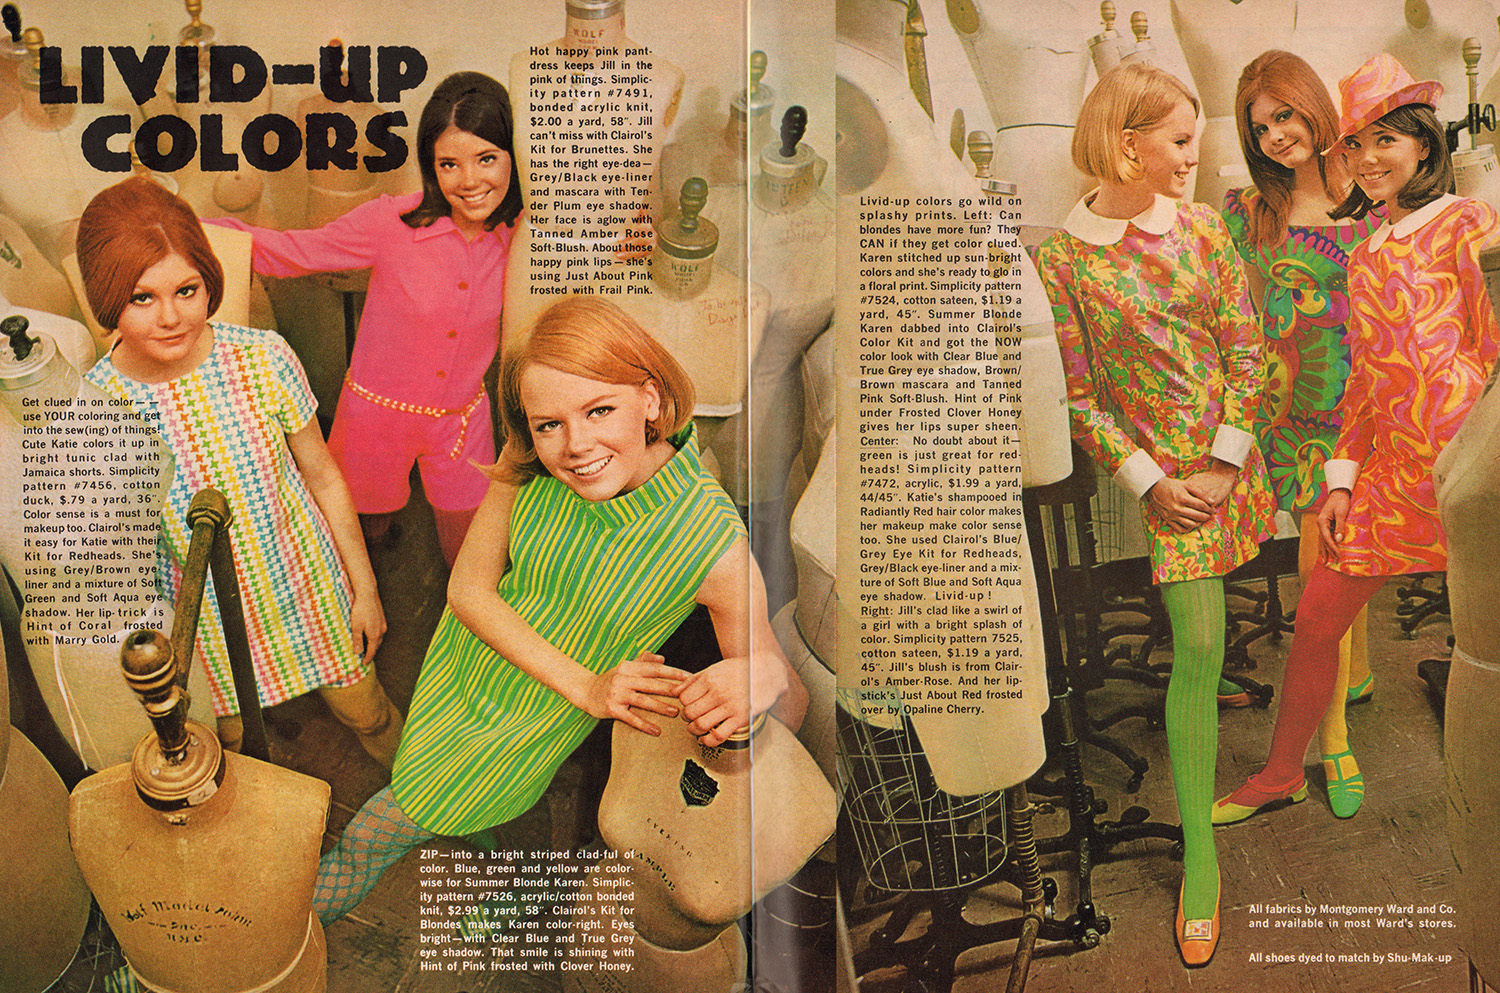 1968 teen fashion